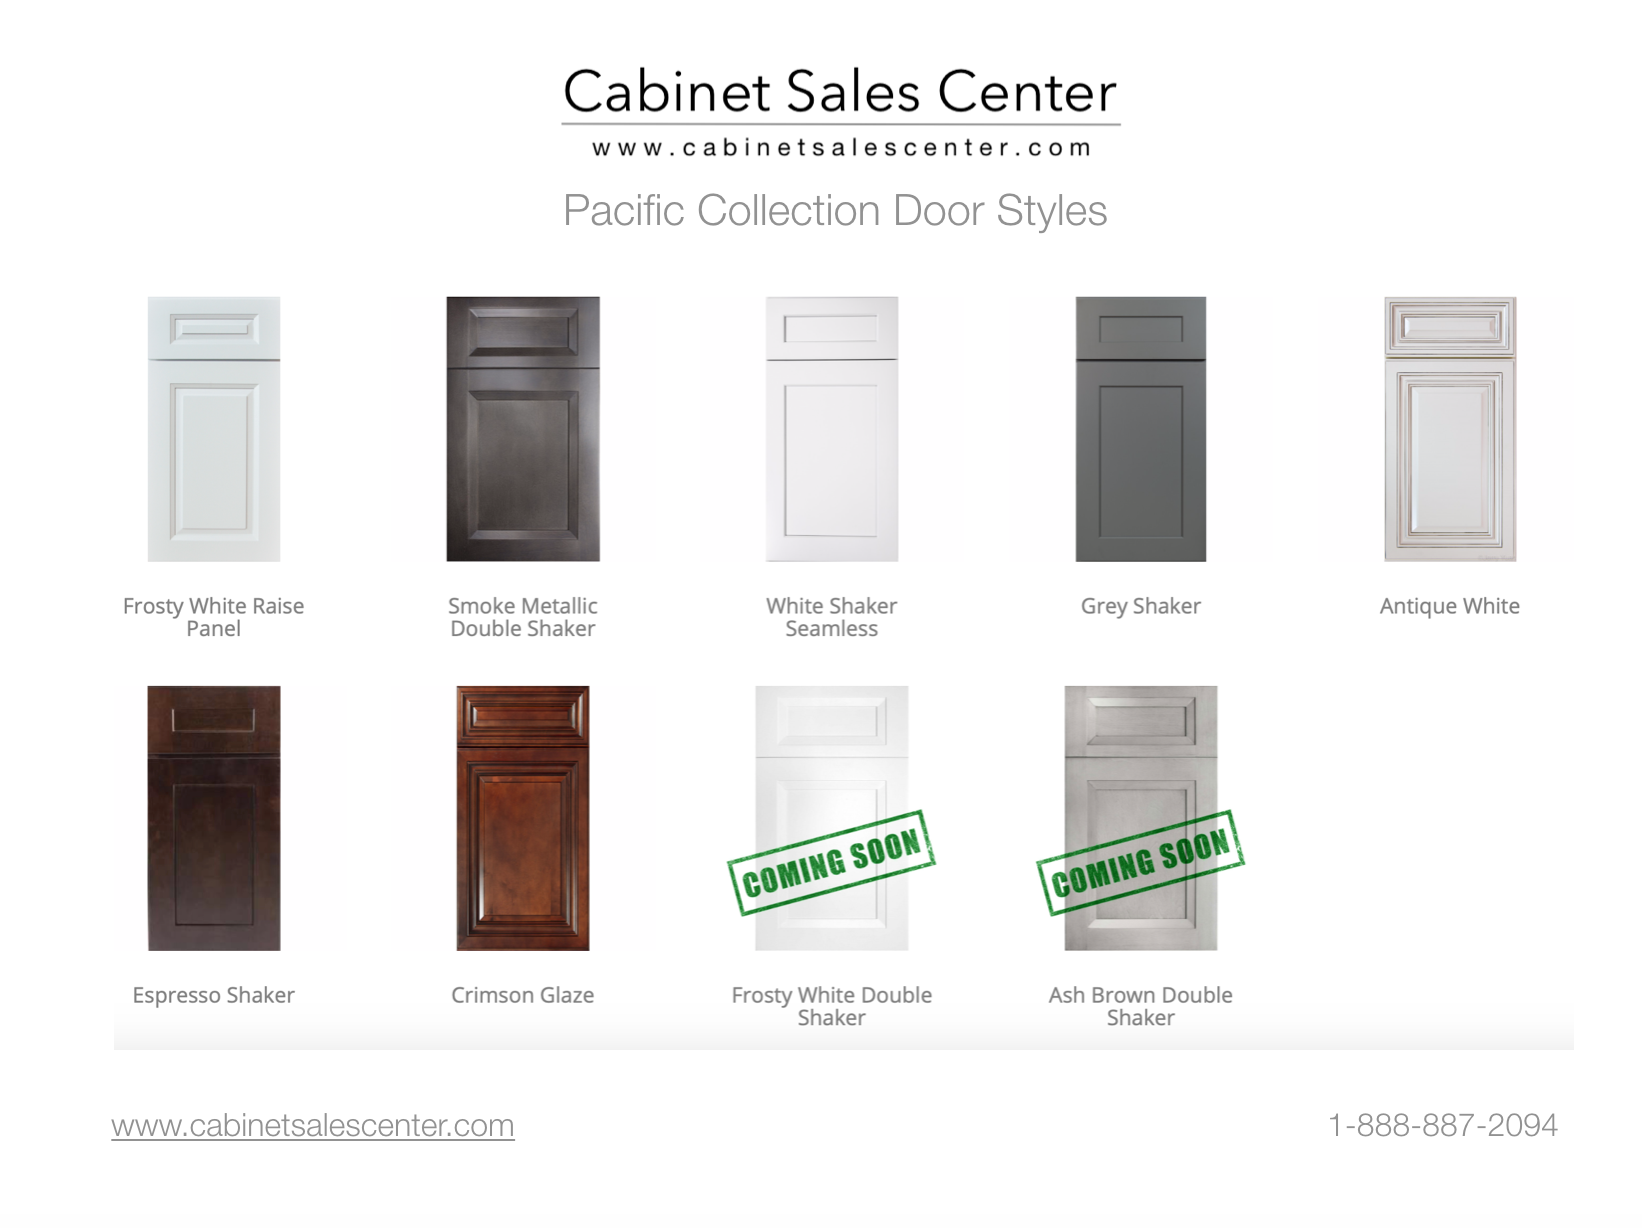 Pacific Collection RTA Cabinets cabinet sales center